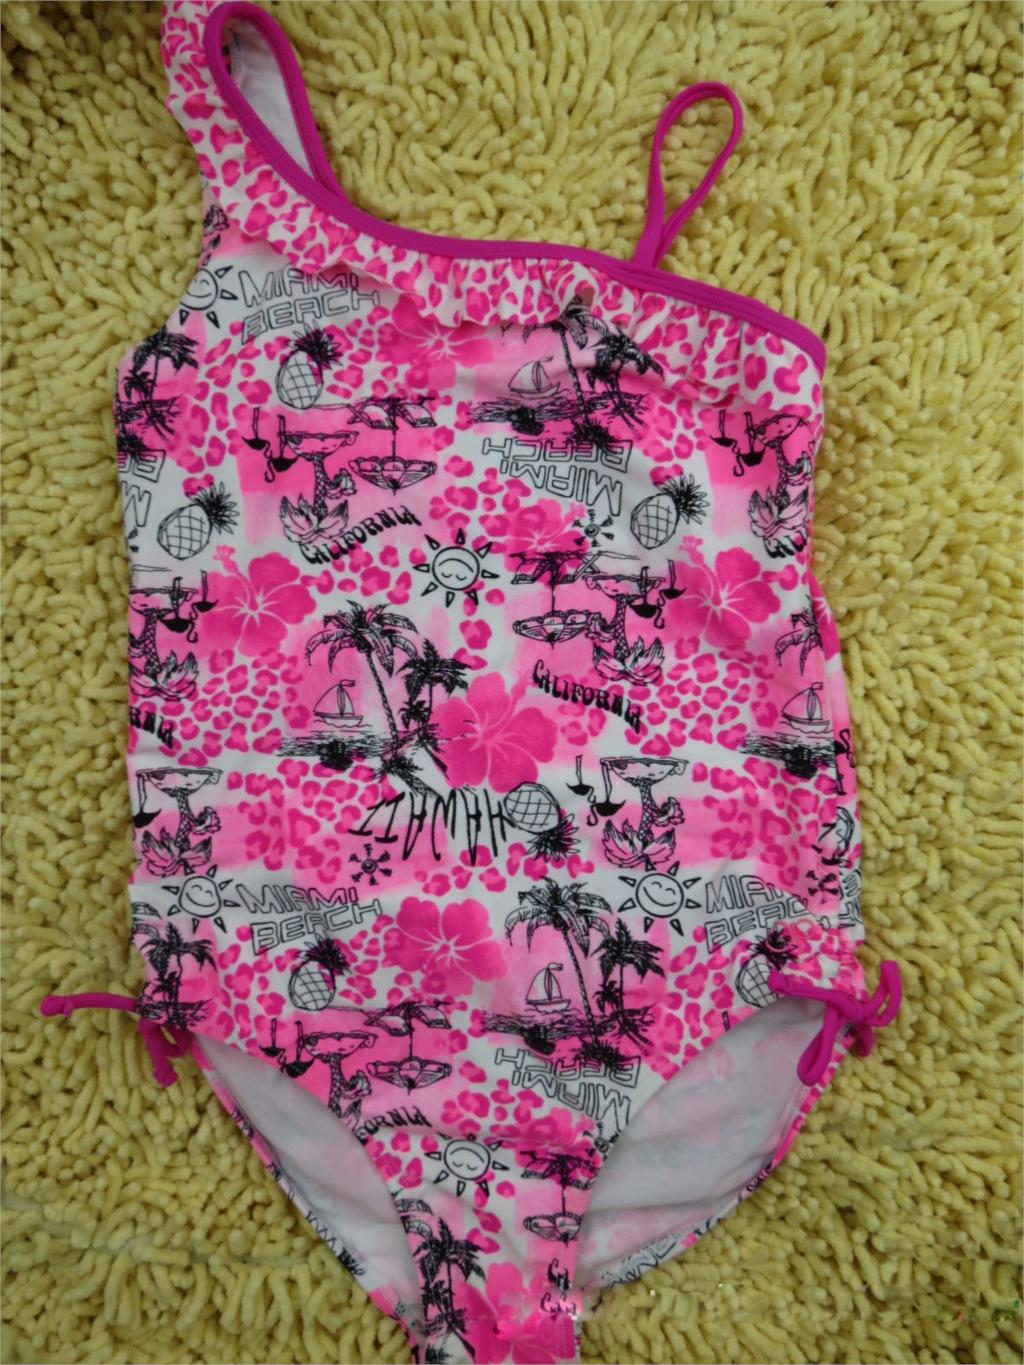 2015 New Rushed Girl Swimwear Kids One Piece Swimsuit Summer Beachsuit With Lace Swimming Sets For 14-18 Years Age Free Shipping(China (Mainland))